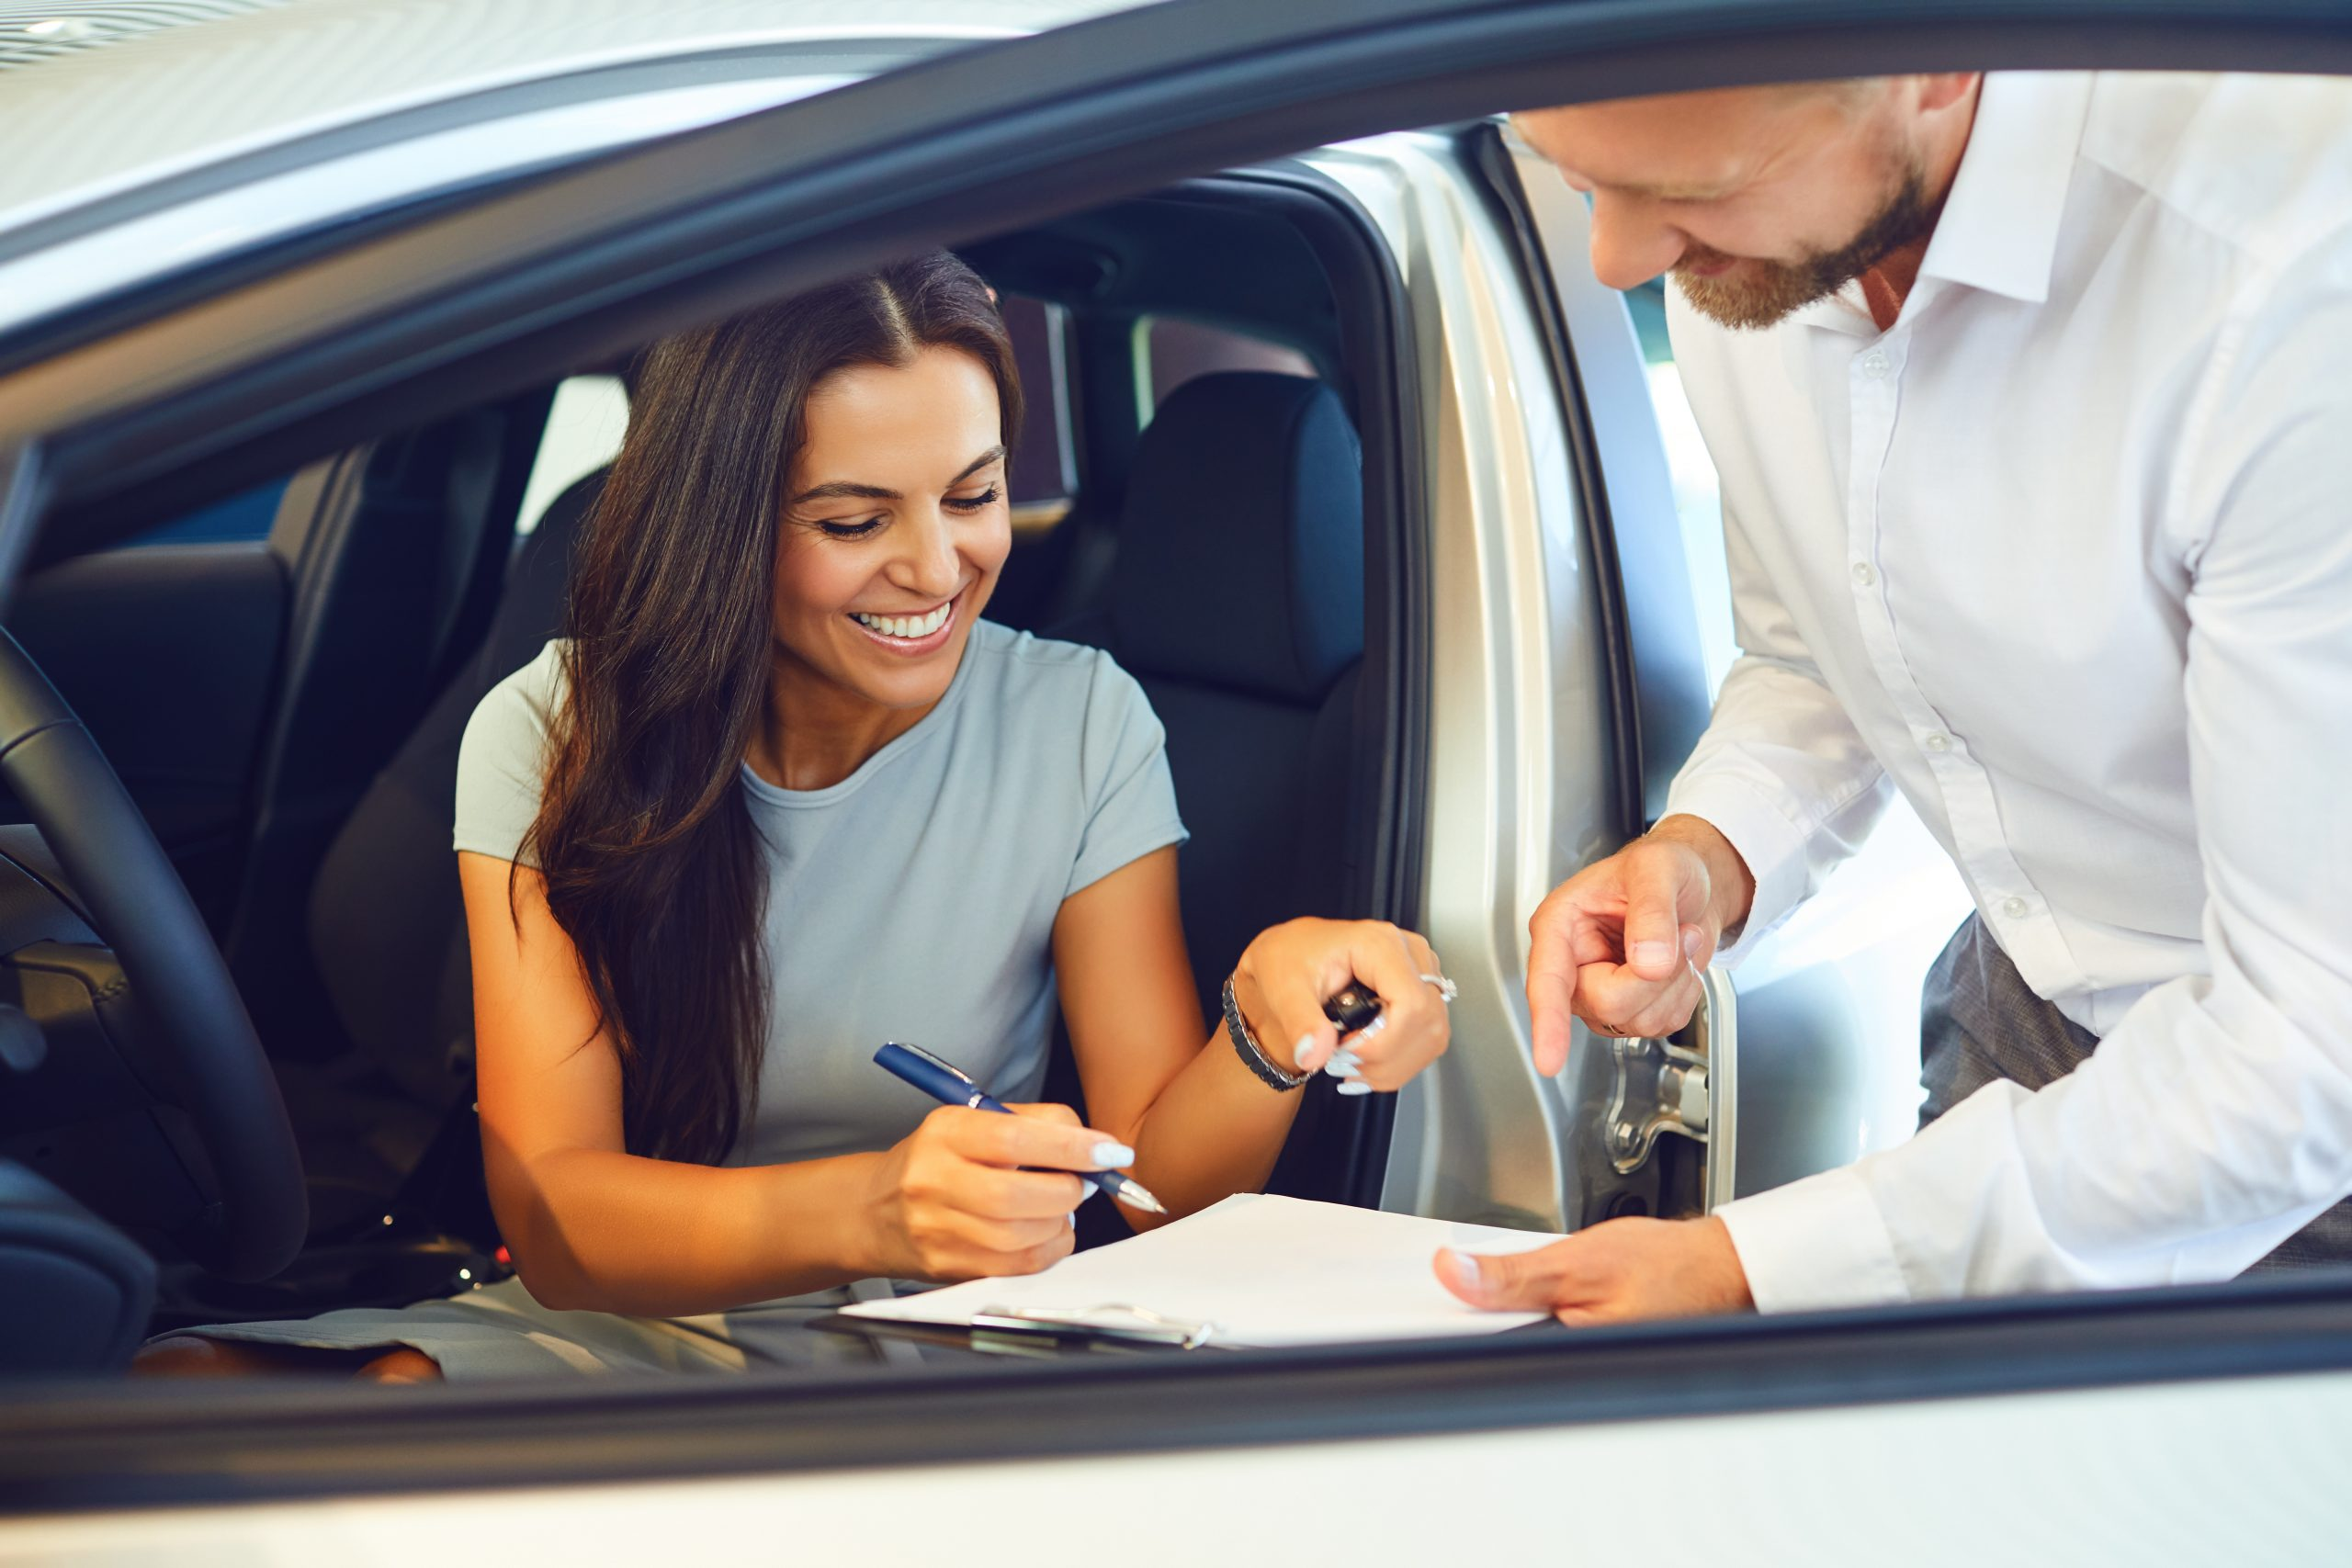 A young woman buys a car in a car showroom. A man signs a car agreement.